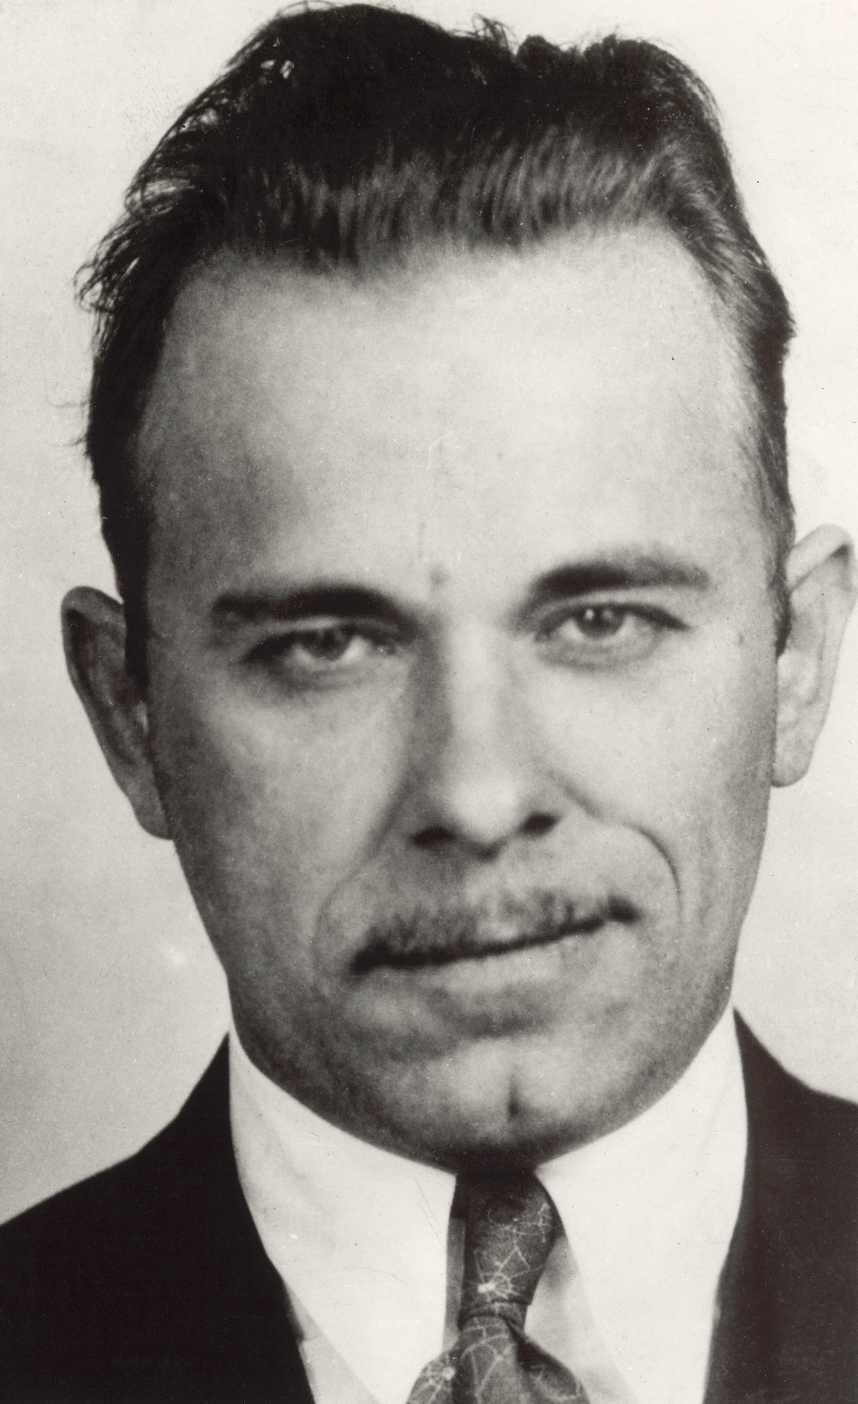 """the early life and times of john dillinger At that time, he was only in the sixth grade his gang performed small crimes, such as stealing coal from a railroad in pennsylvania (""""public enemy"""" 207) a few years later, he would join the navy, only to leave."""